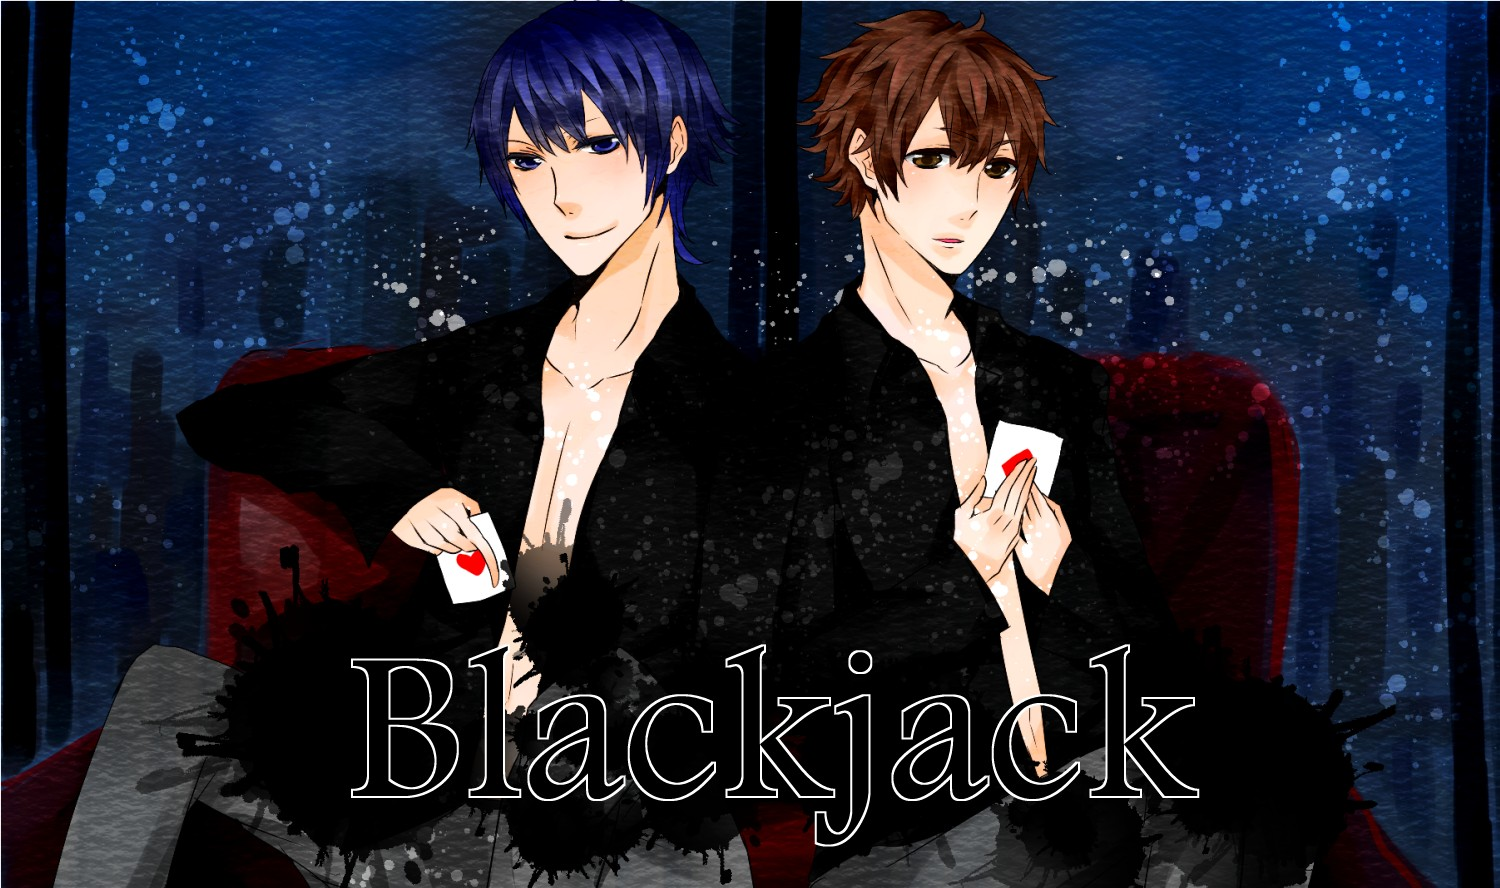 Strip blackjack app iphone